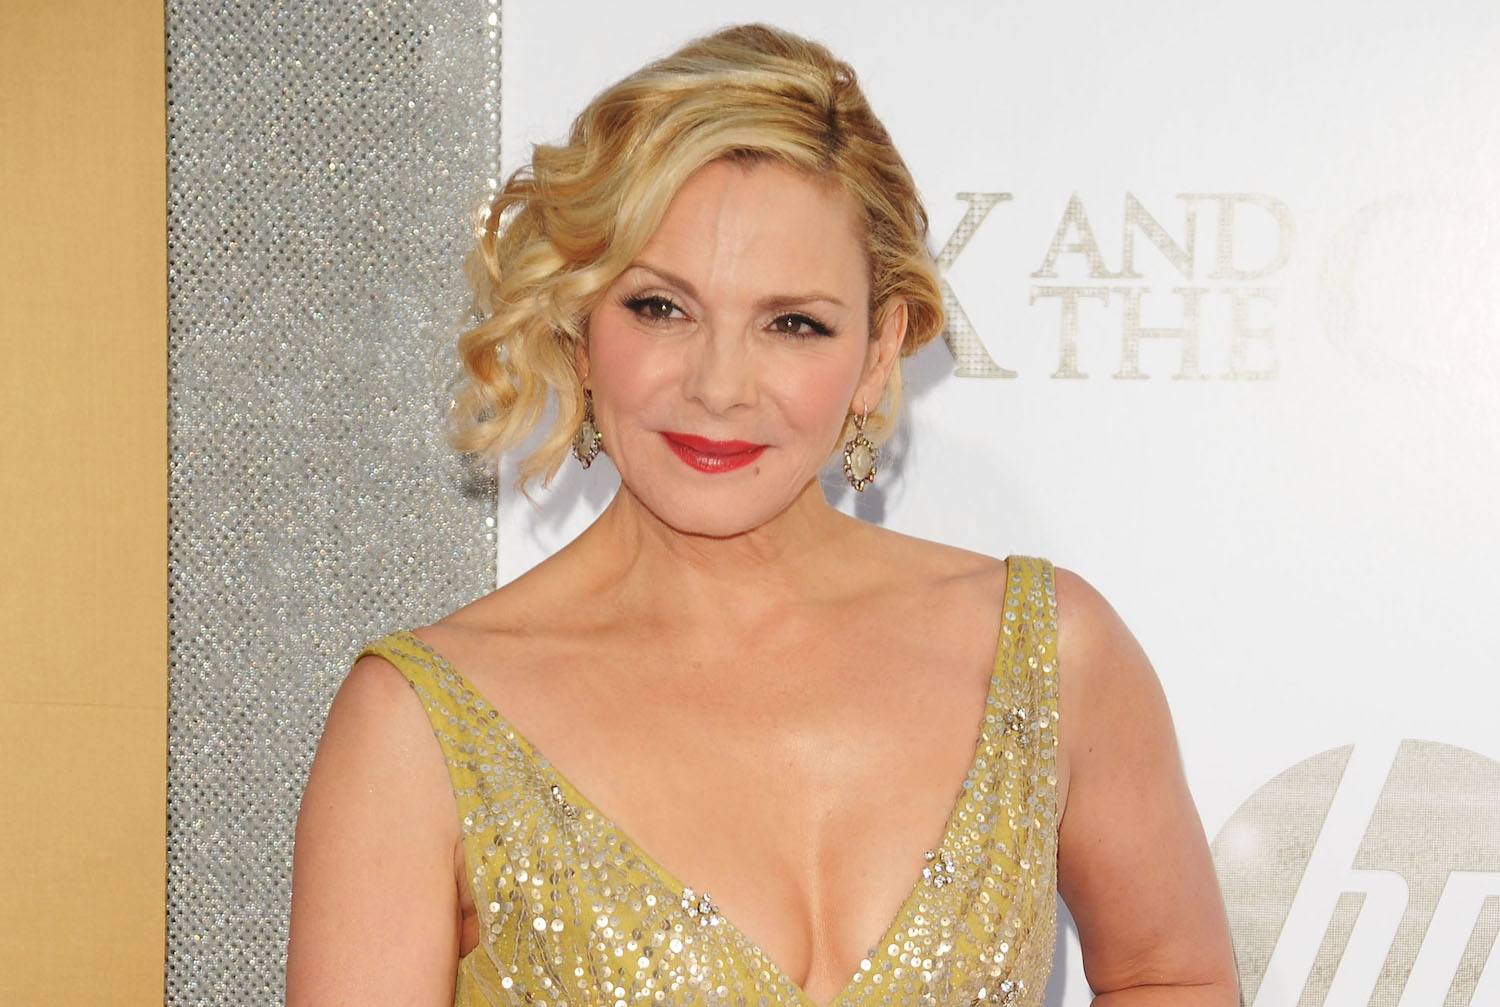 Kim Cattrall Just Addressed The 'Sex And The City' Feud ...